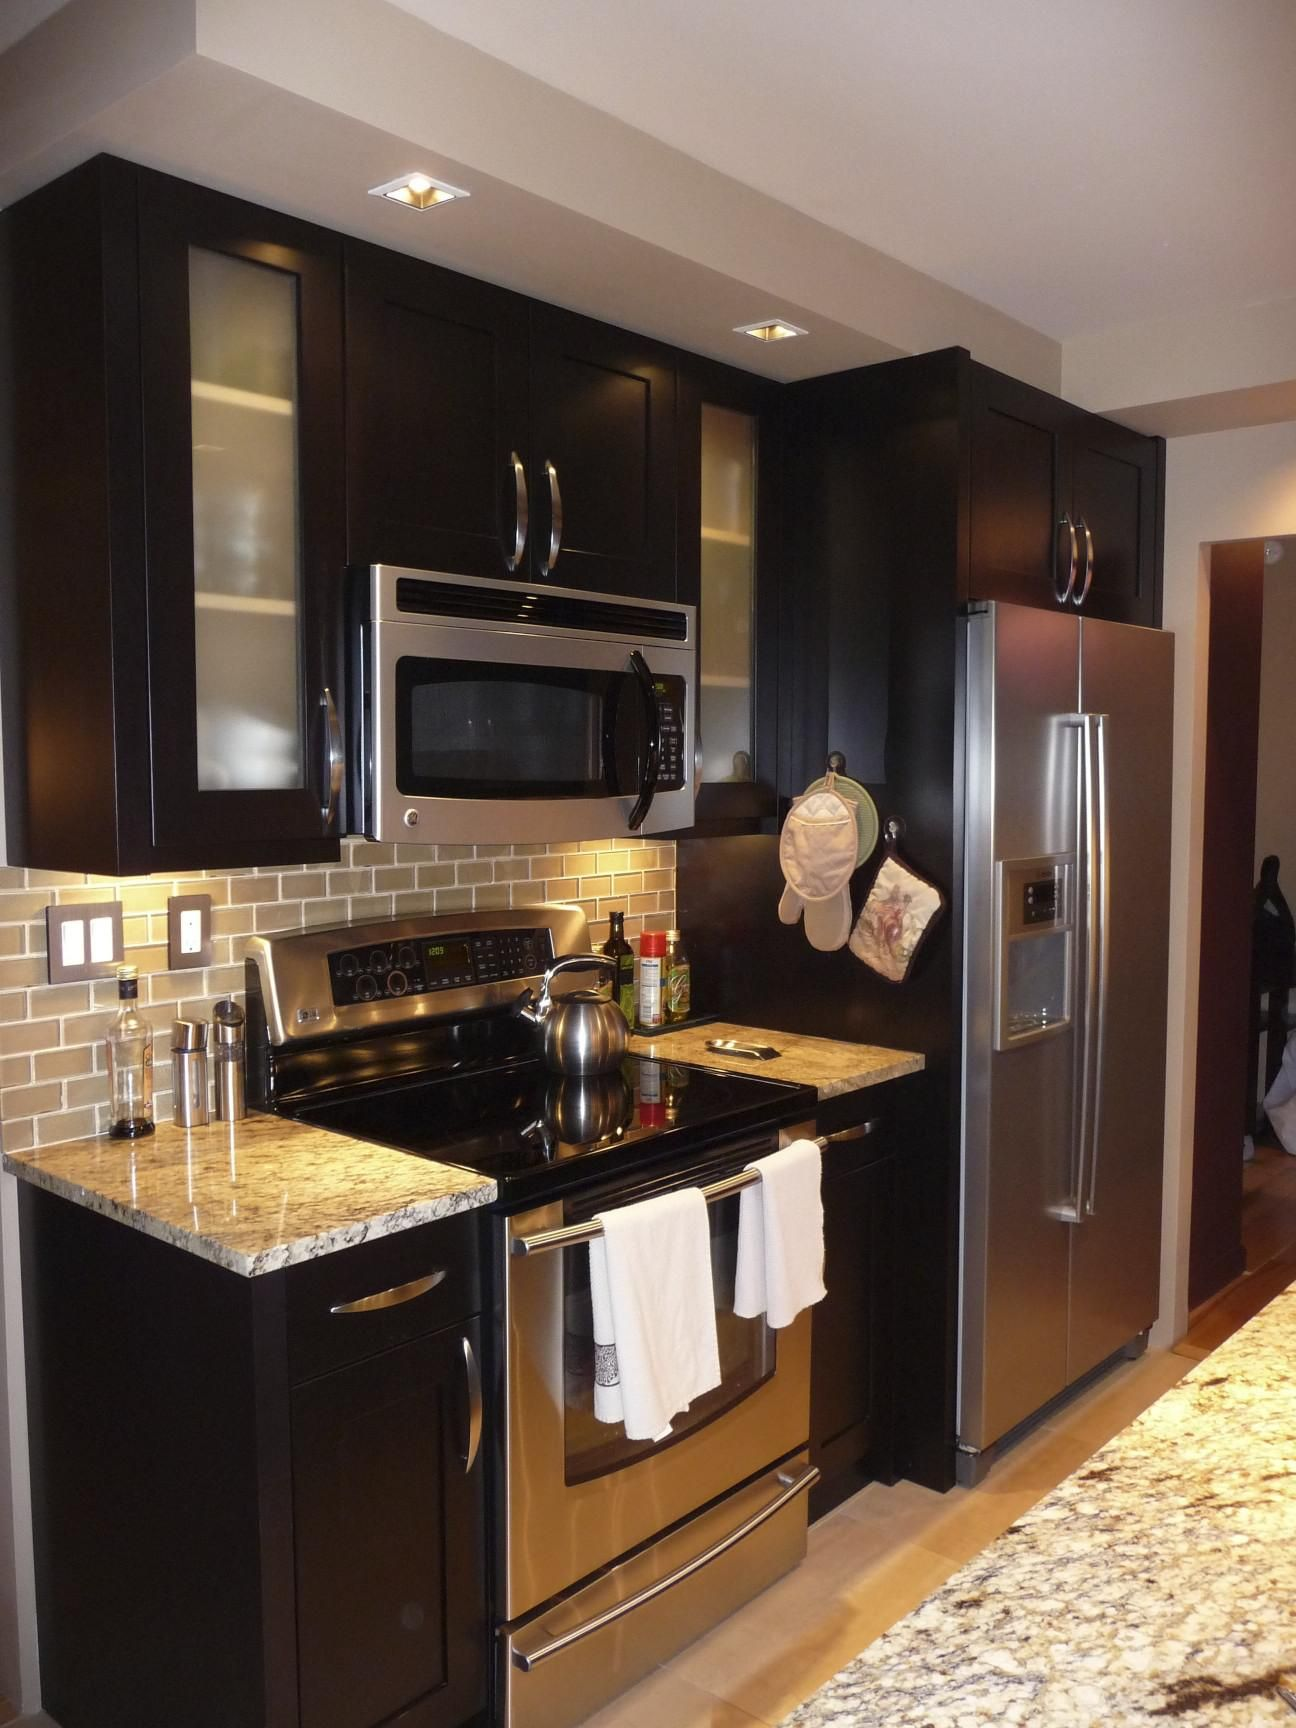 Espresso Cabinets With Stainless Steel Appliances And Backsplash